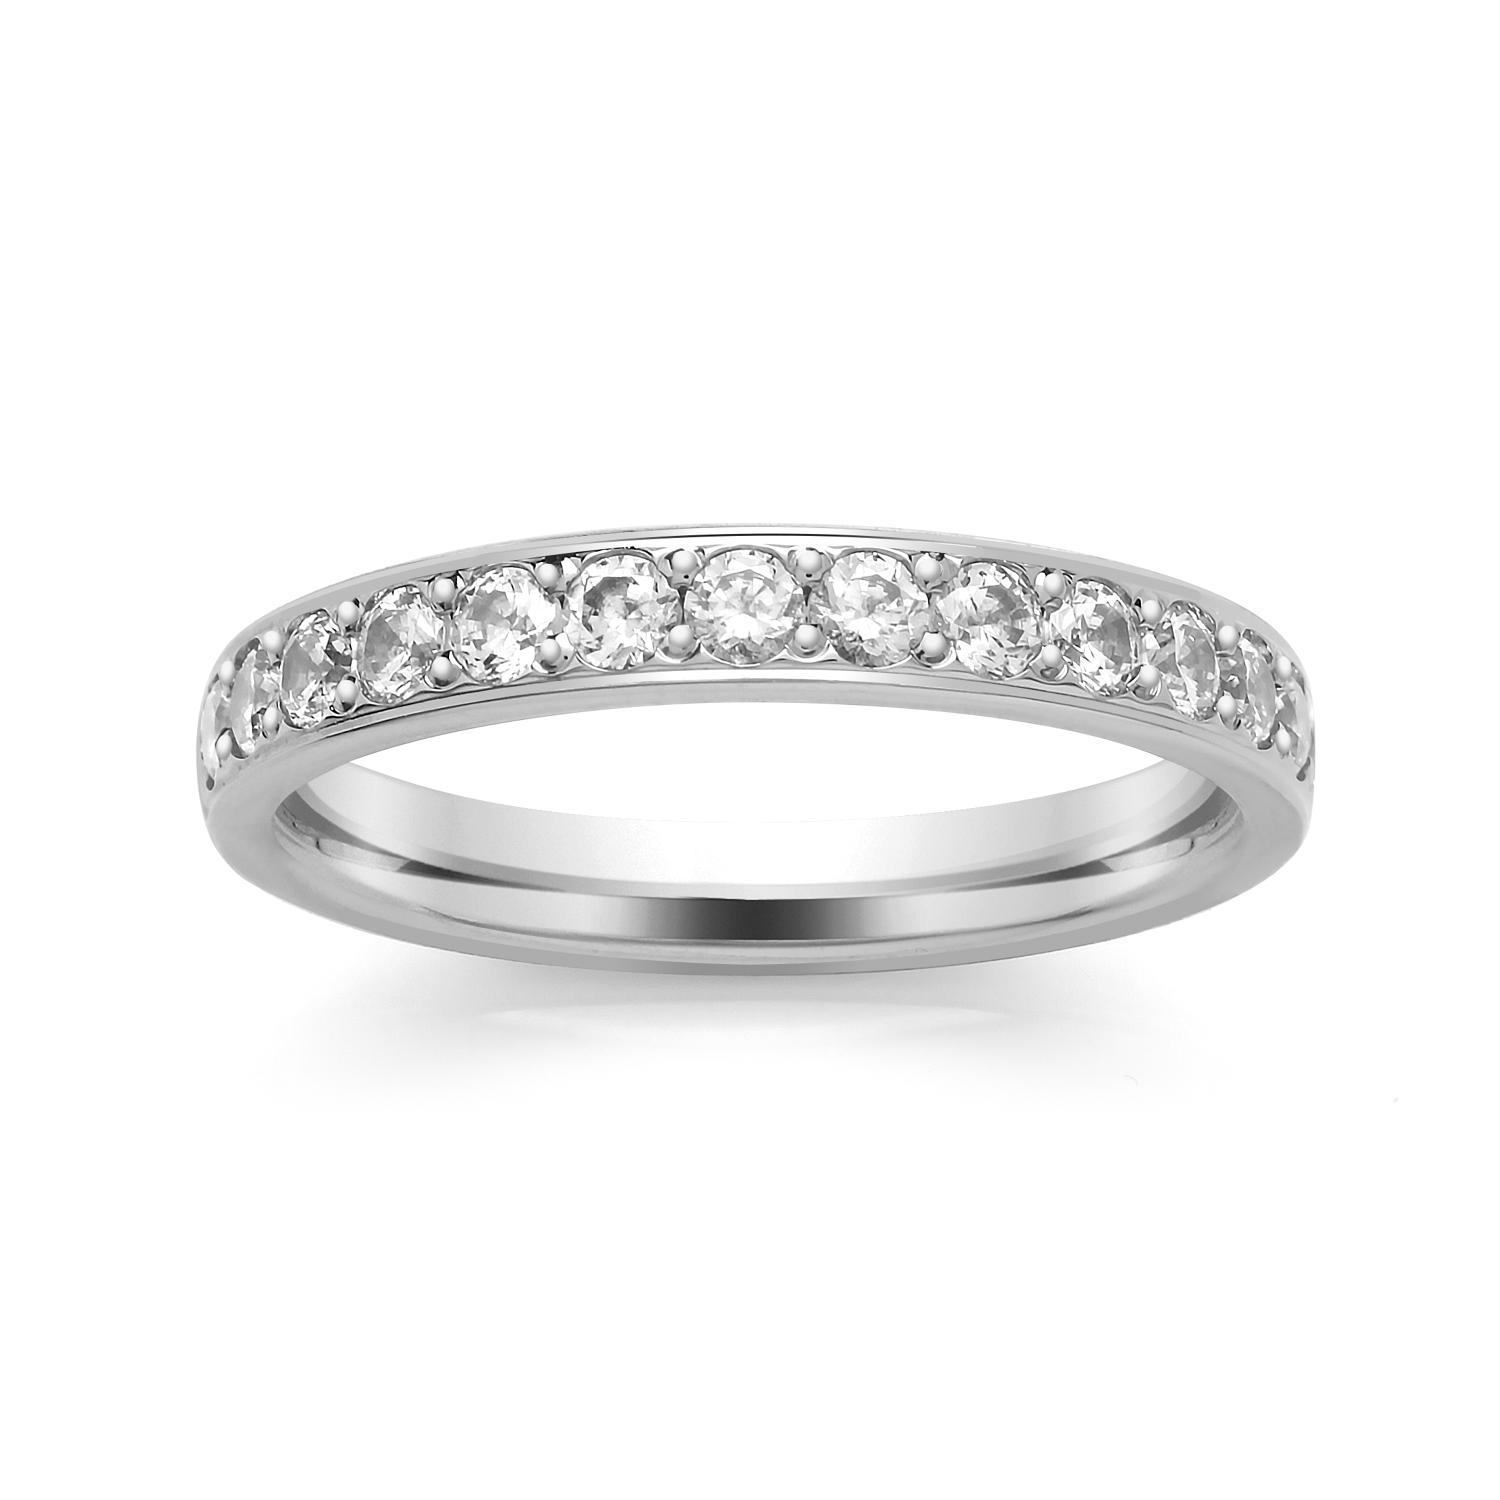 3.1mm Grain Set Diamond Ring